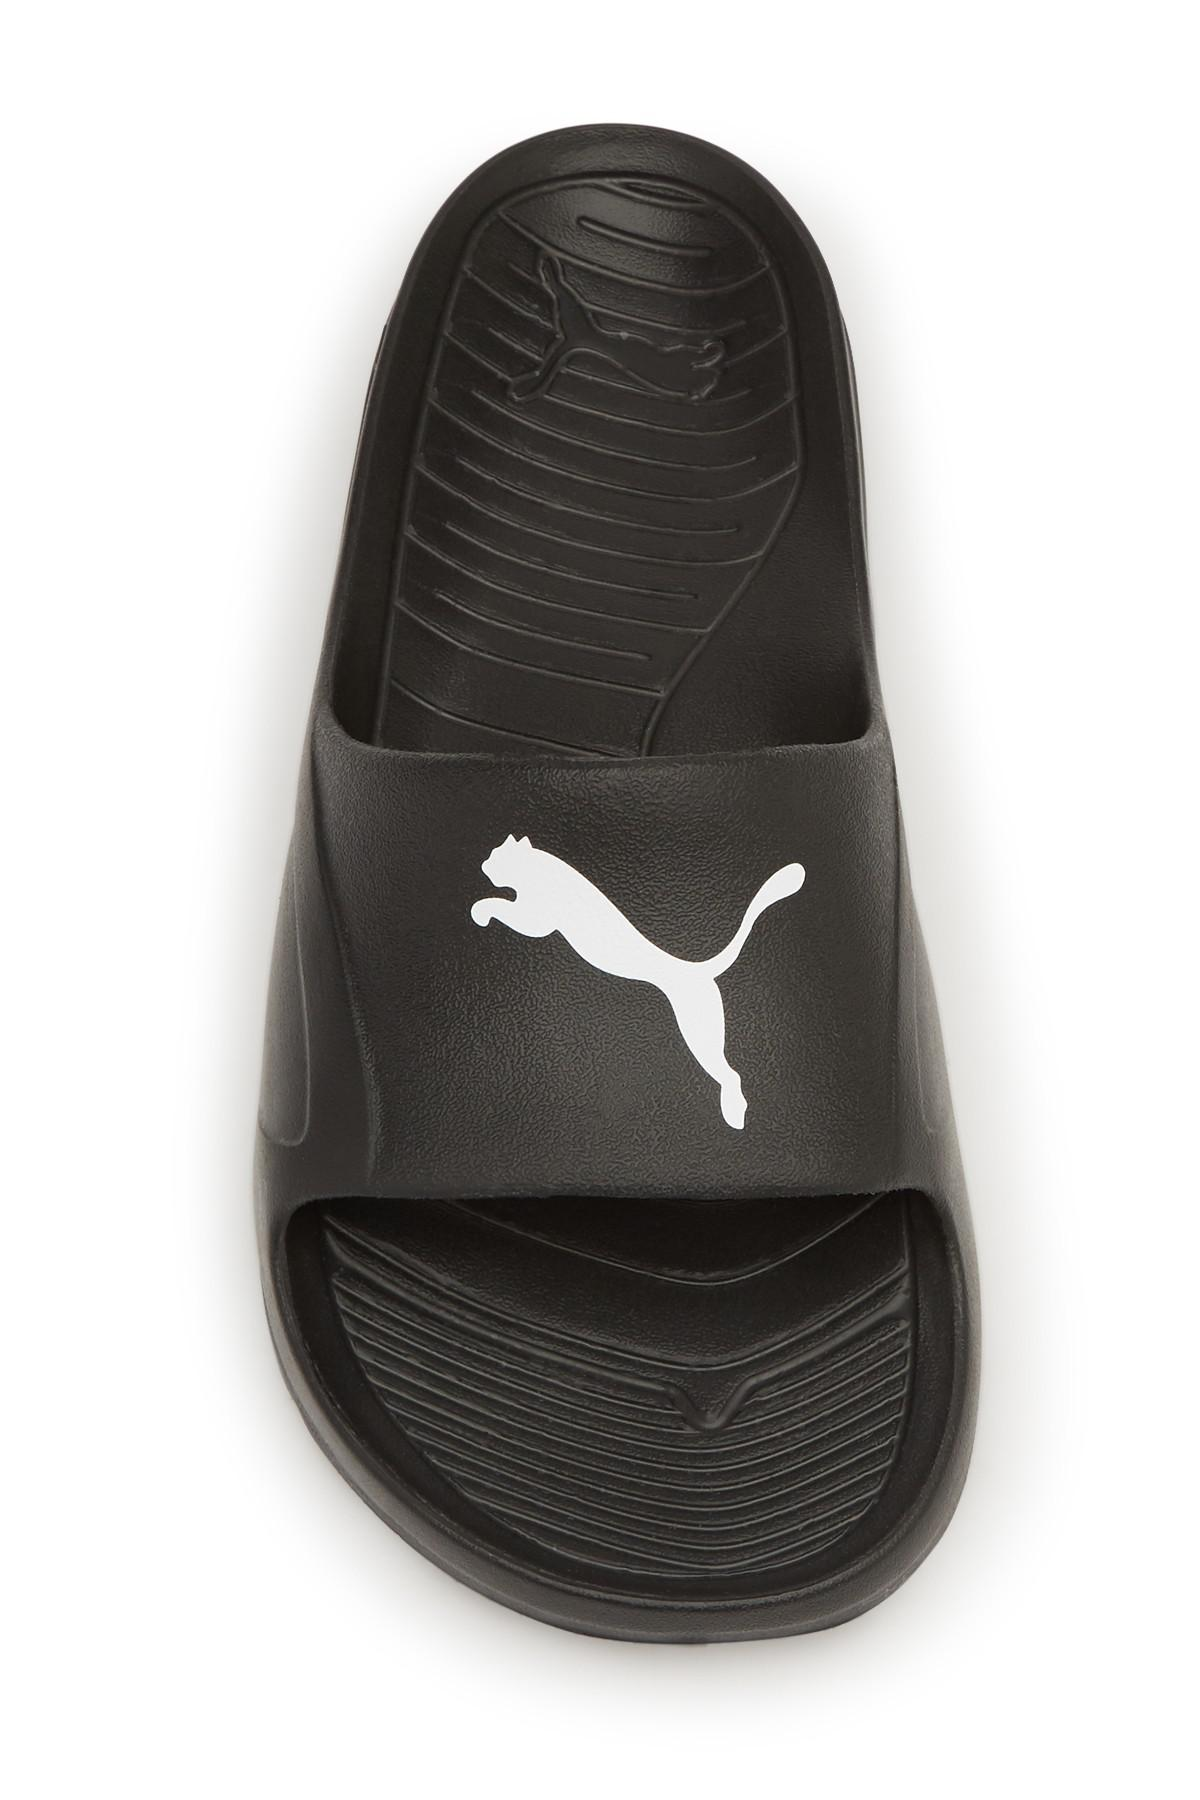 b5f7af5e4fa6 Lyst - PUMA Divecat Slide Sandal in Black for Men